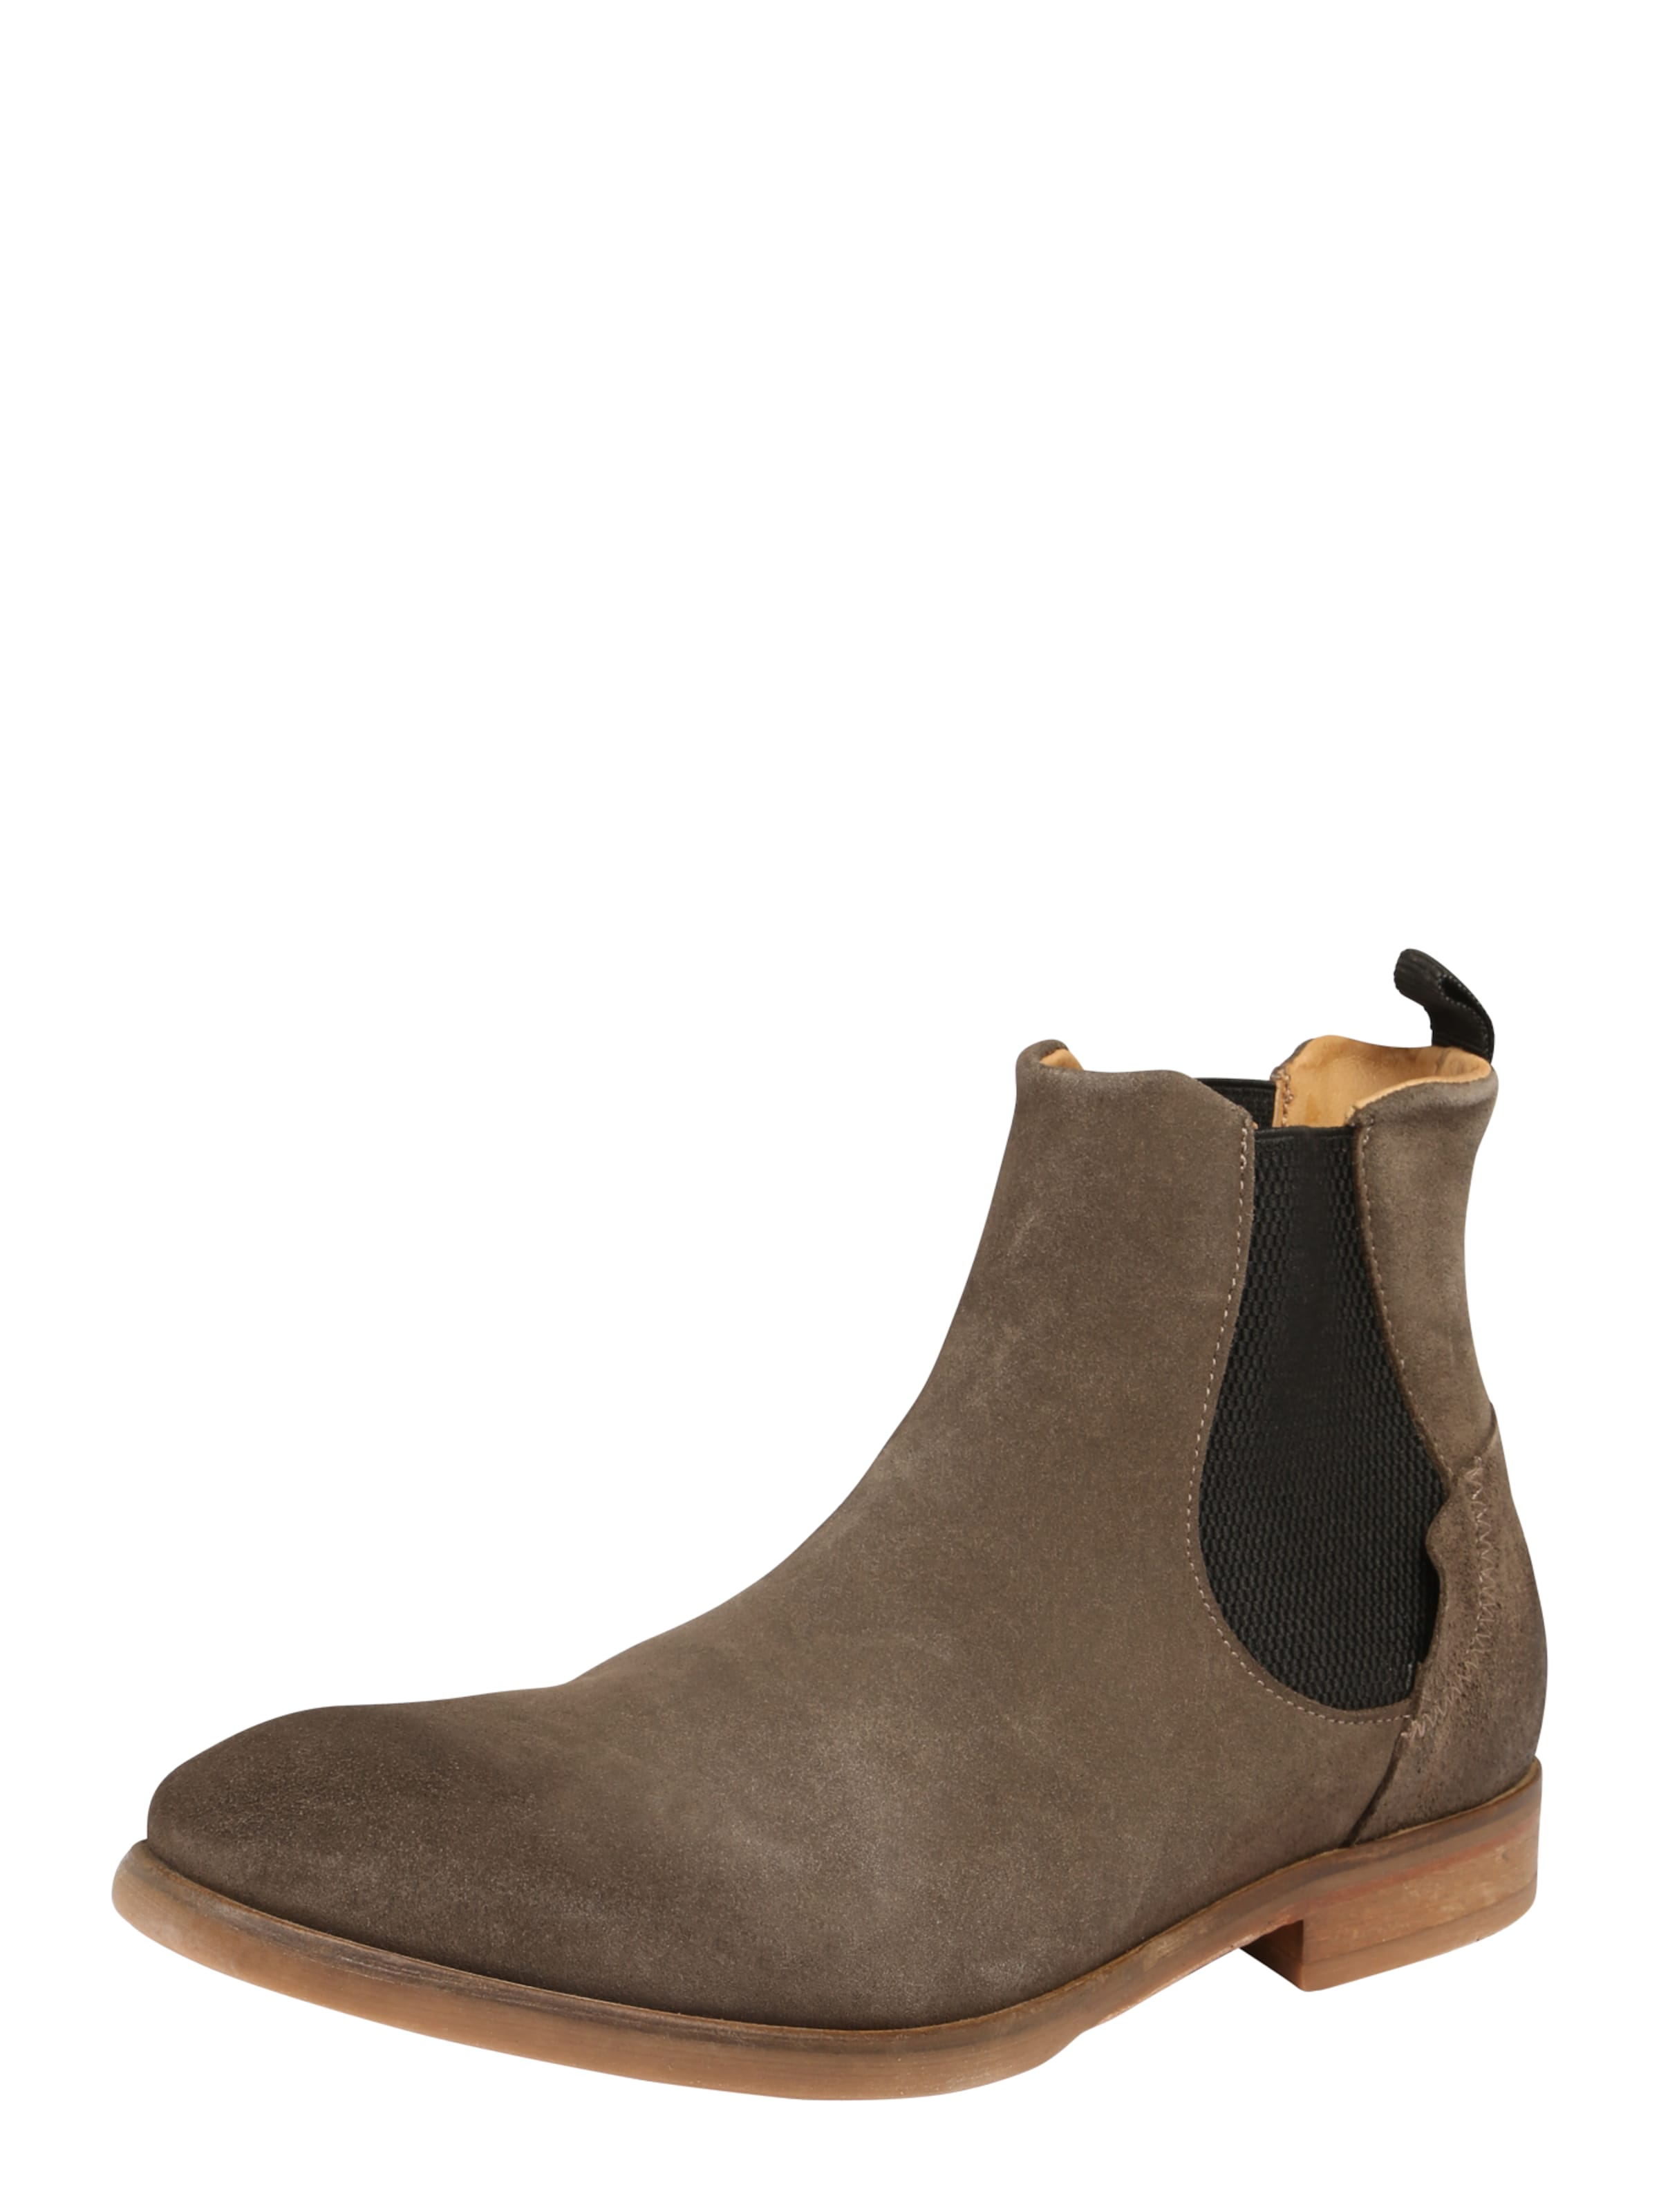 In 'watchley' Boot Stone Hudson London Chelsea gbf7yY6v